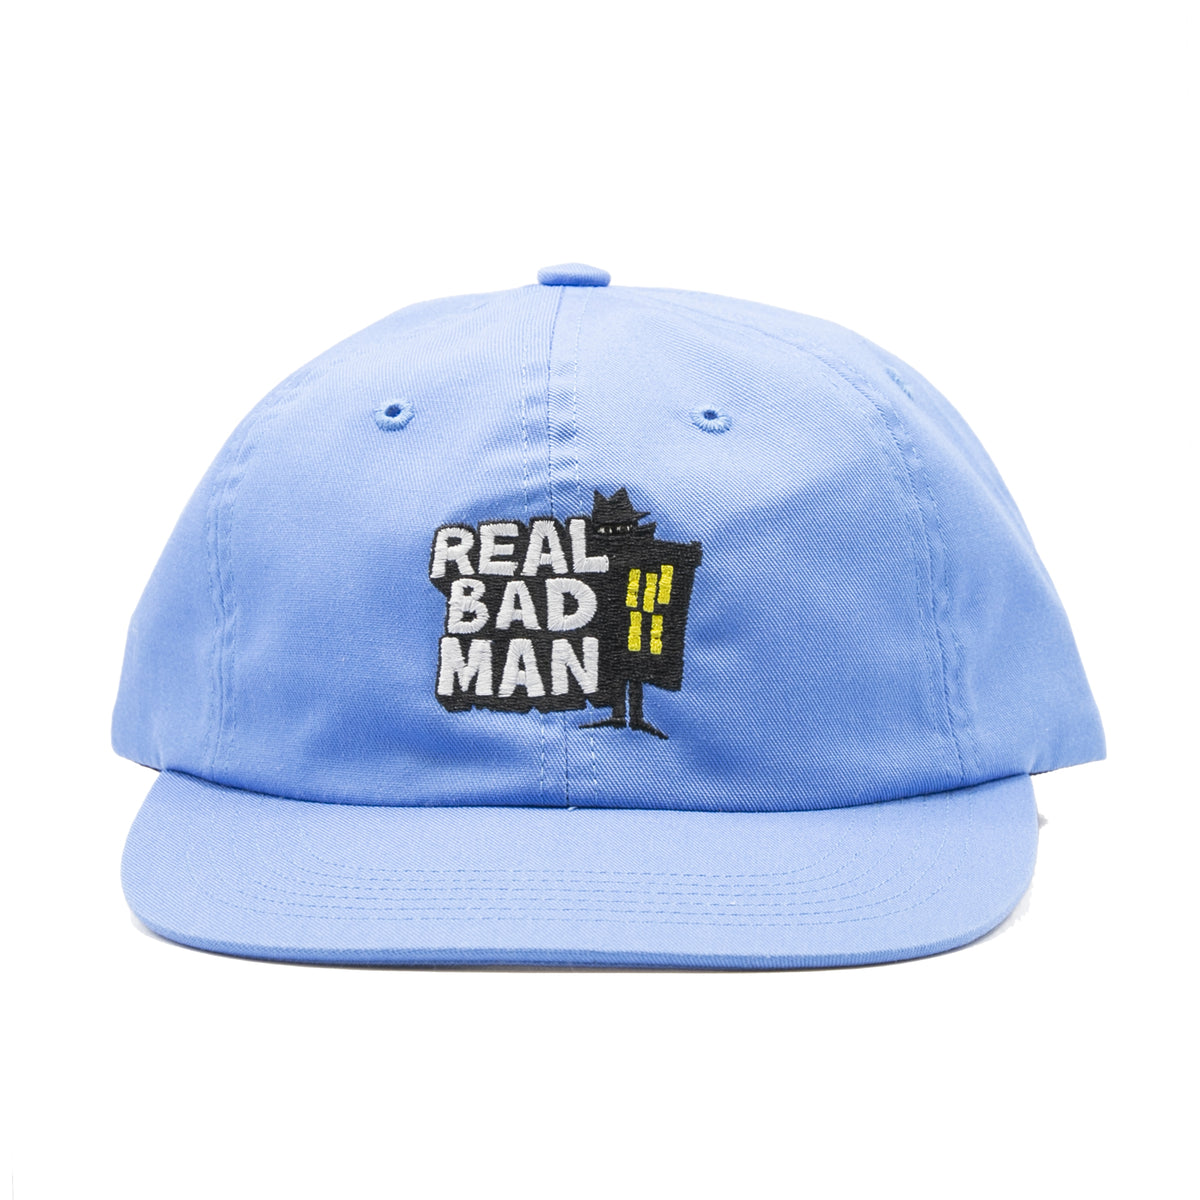 RBM SWAP MEET HAT